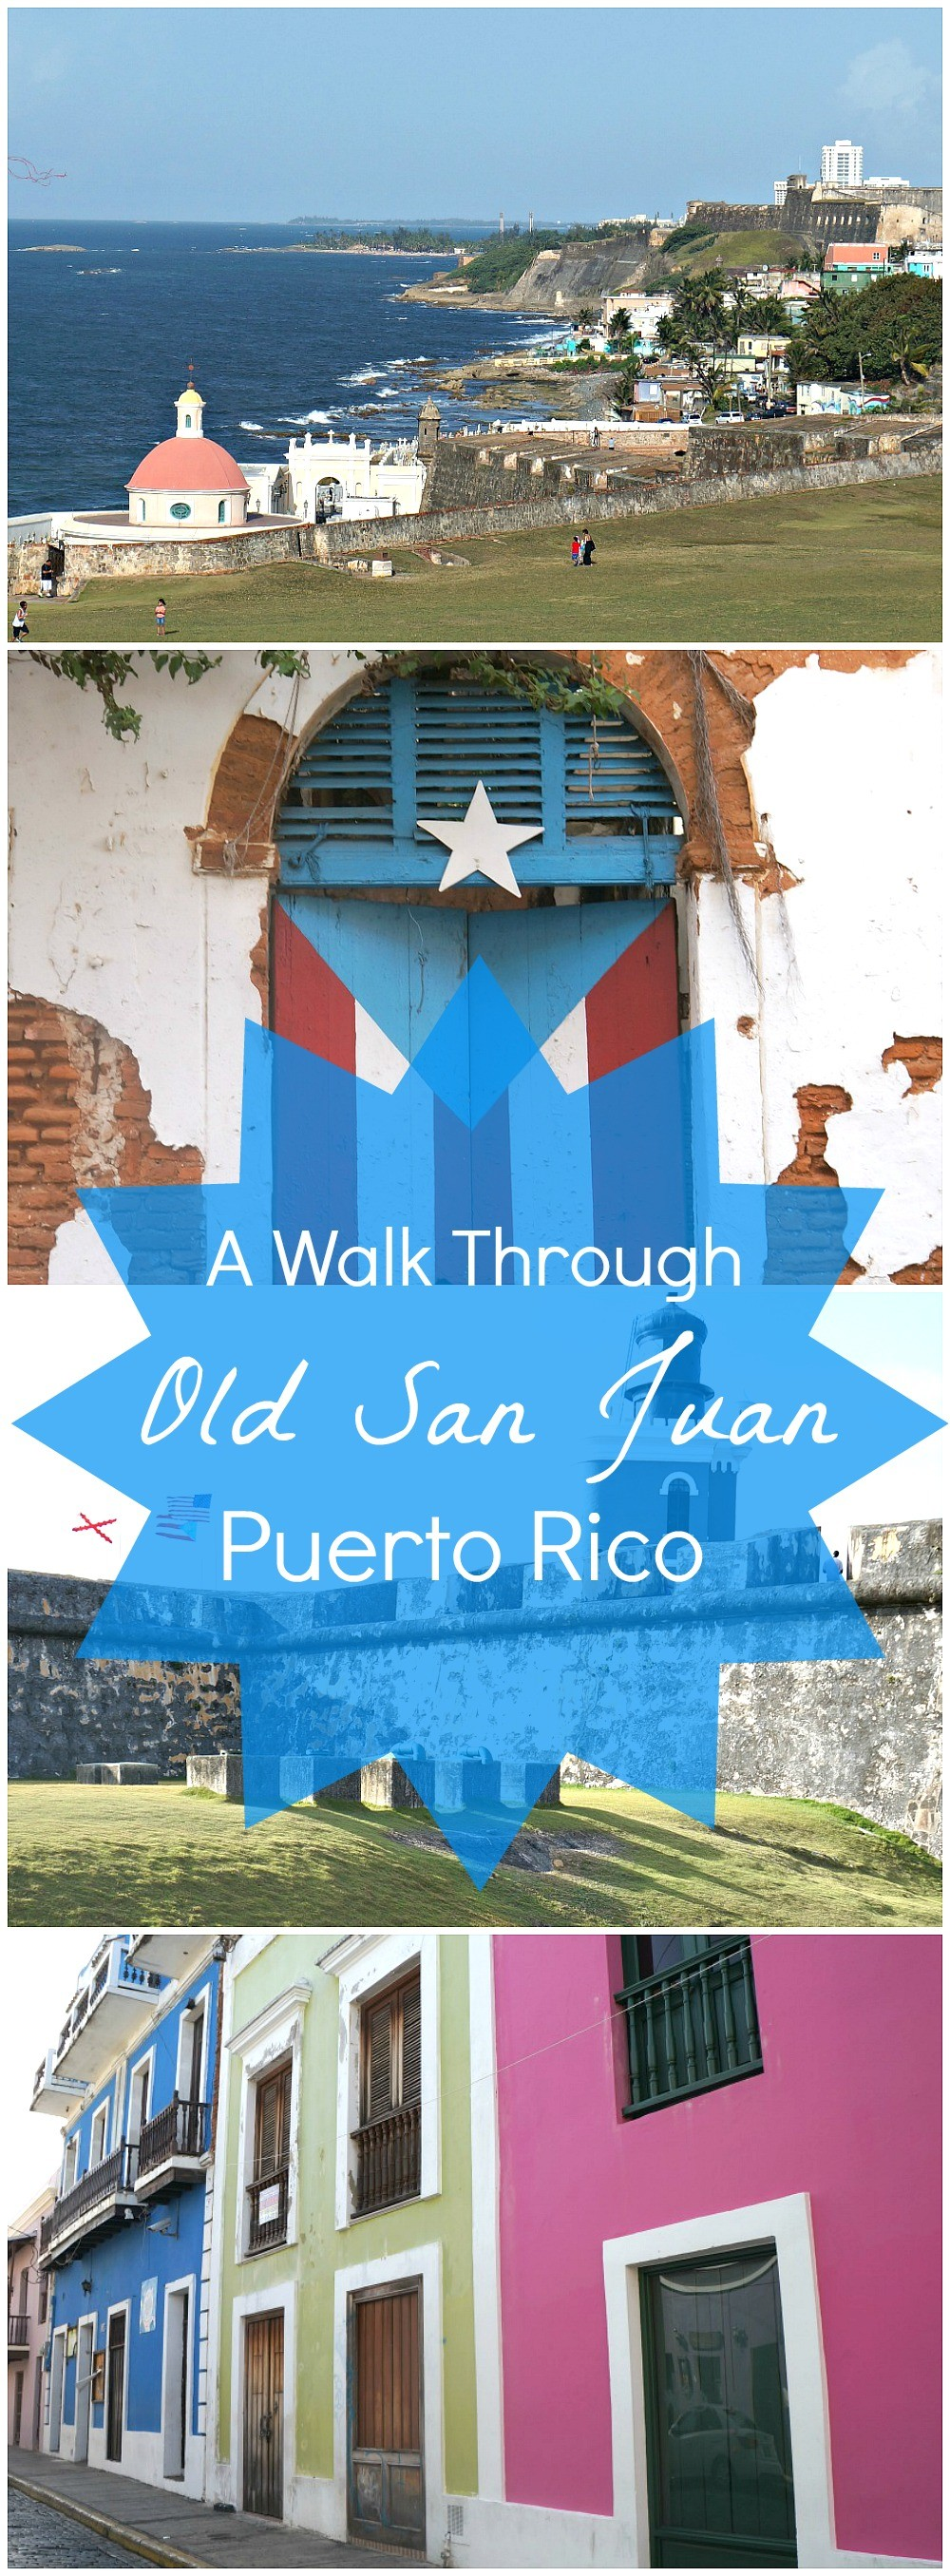 Things to do in Puerto Rico, Walking Photo Tour of Old San Juan, Puerto Rico